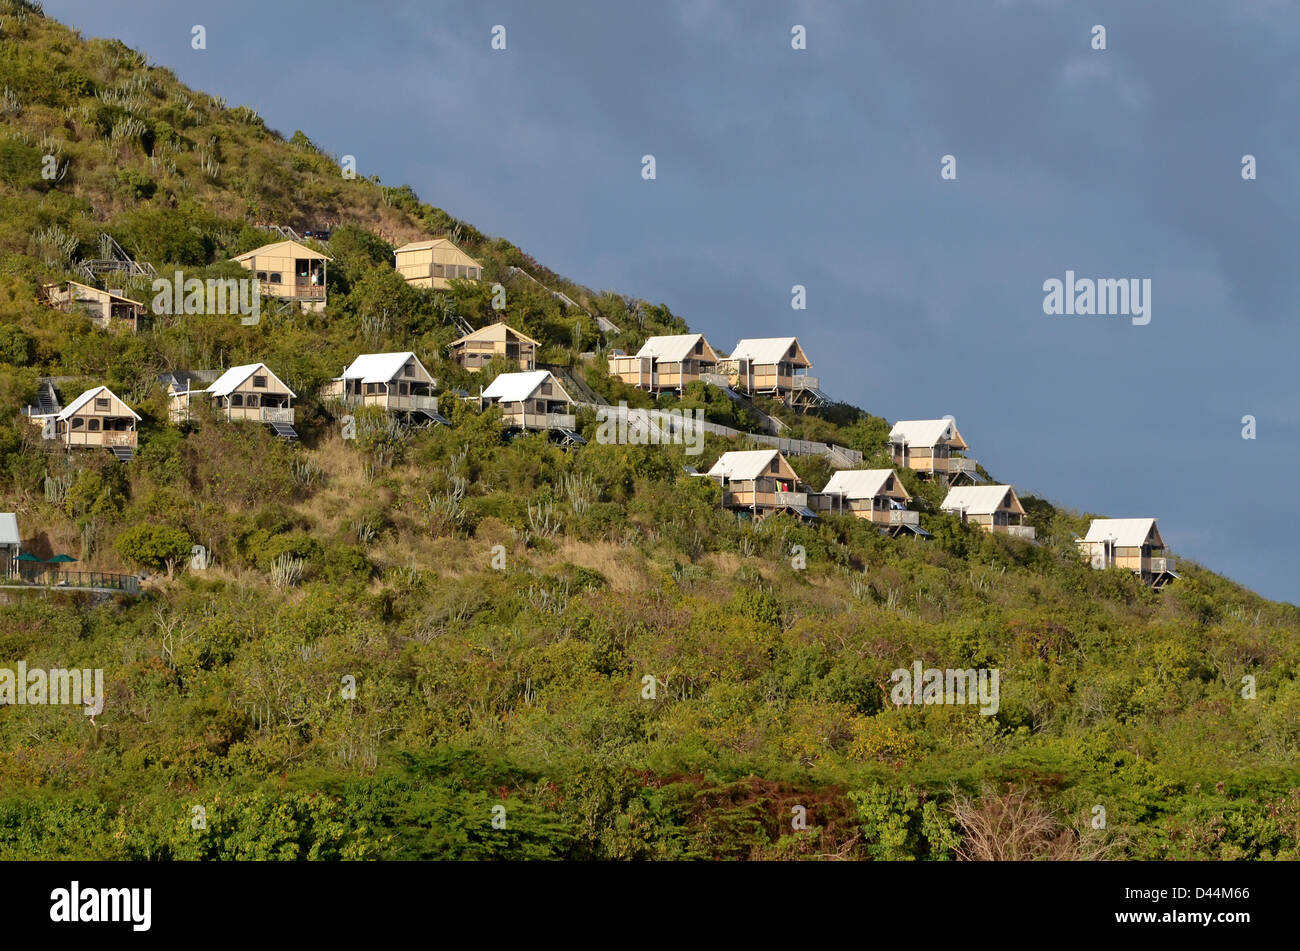 Concordia Eco Resort St. John U.S. Virgin Islands & Concordia Eco Resort St. John U.S. Virgin Islands Stock Photo ...